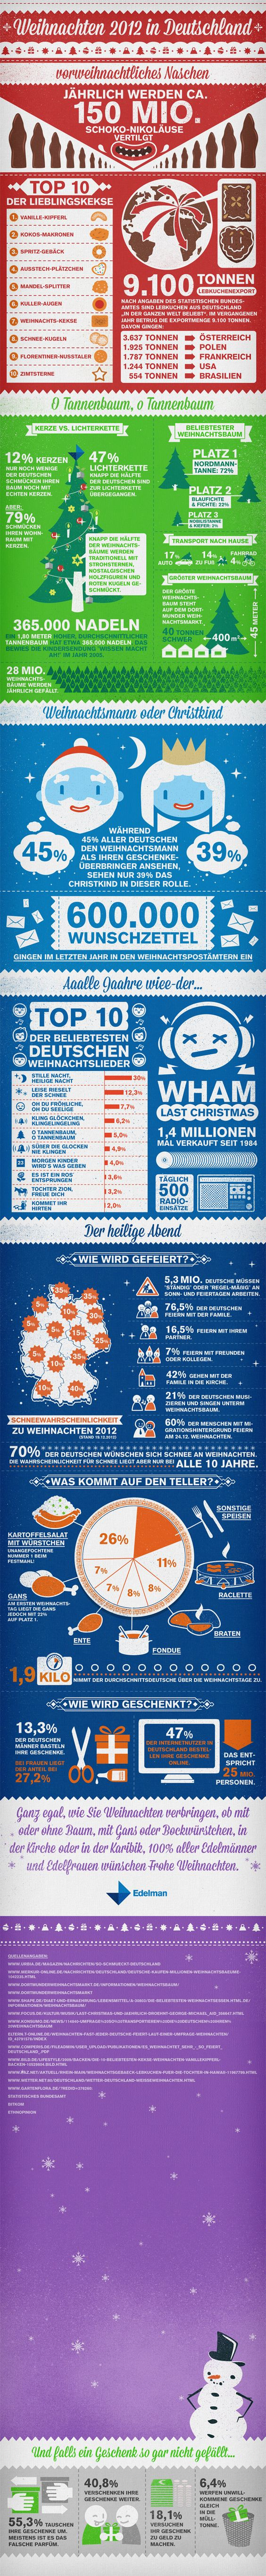 Edelman Germany's take on Christmas 2012: detailed infografic with stats on Christmas habits and traditions in Germany